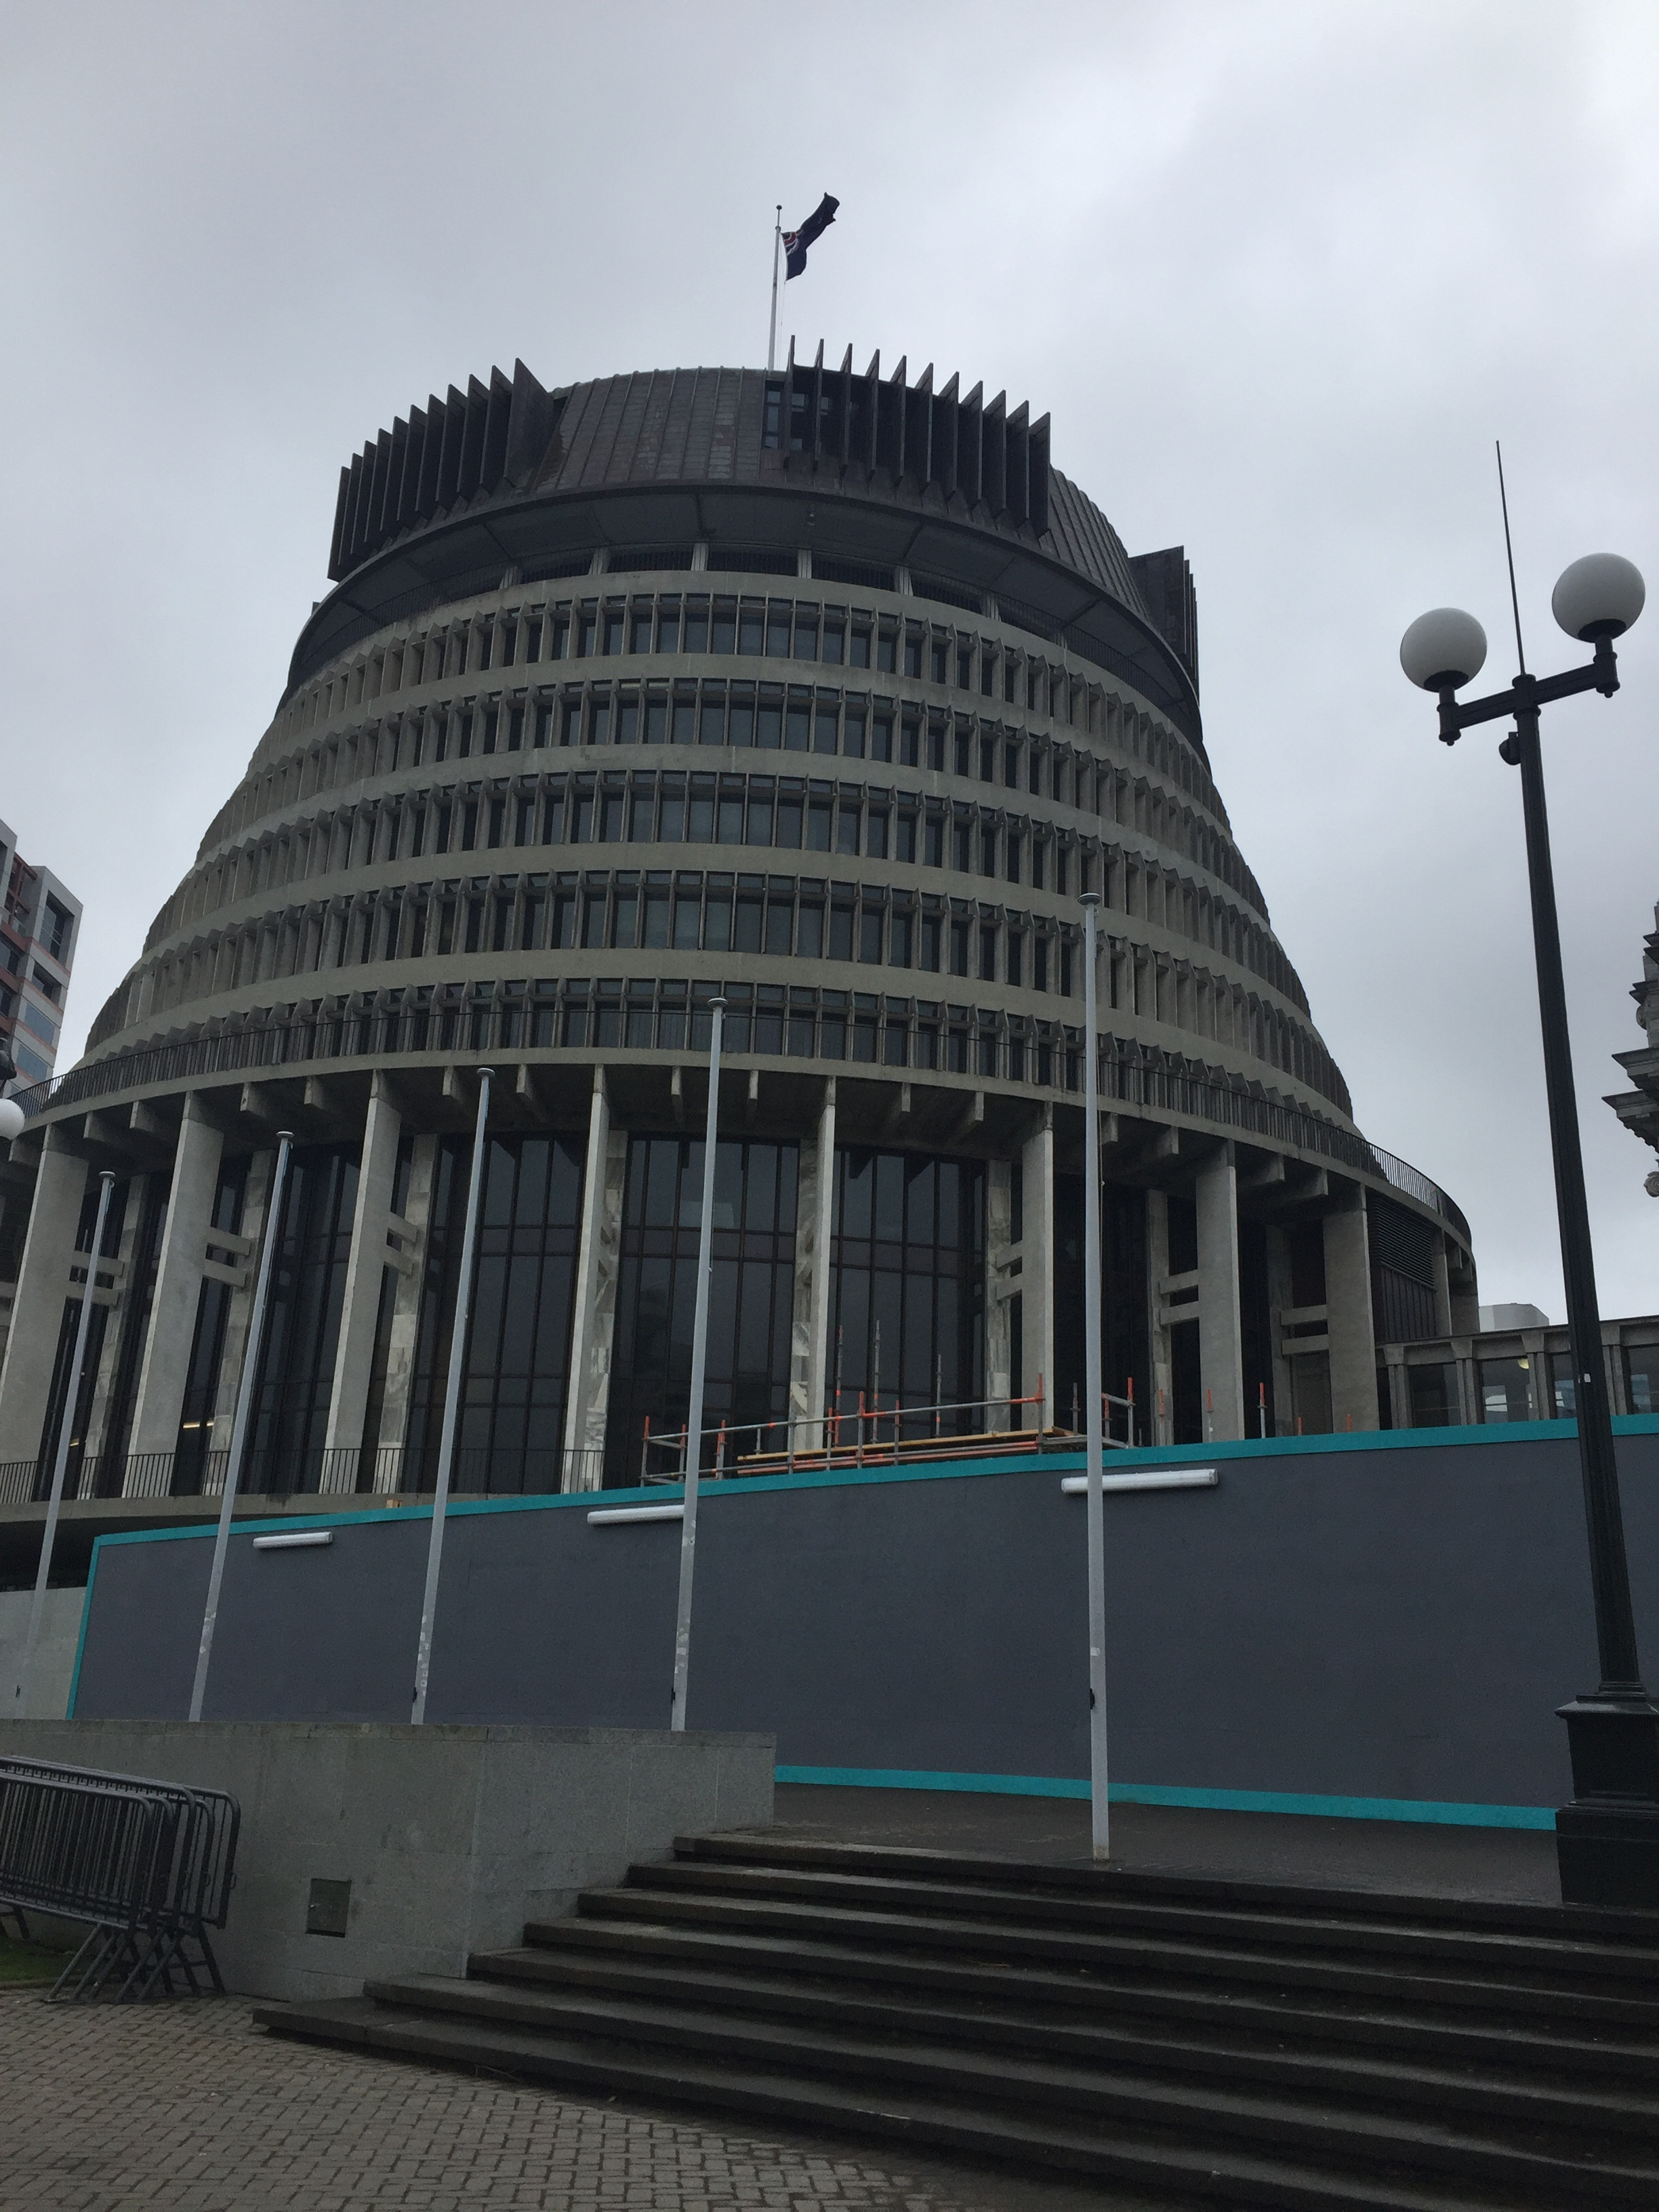 The beehive - Parliment